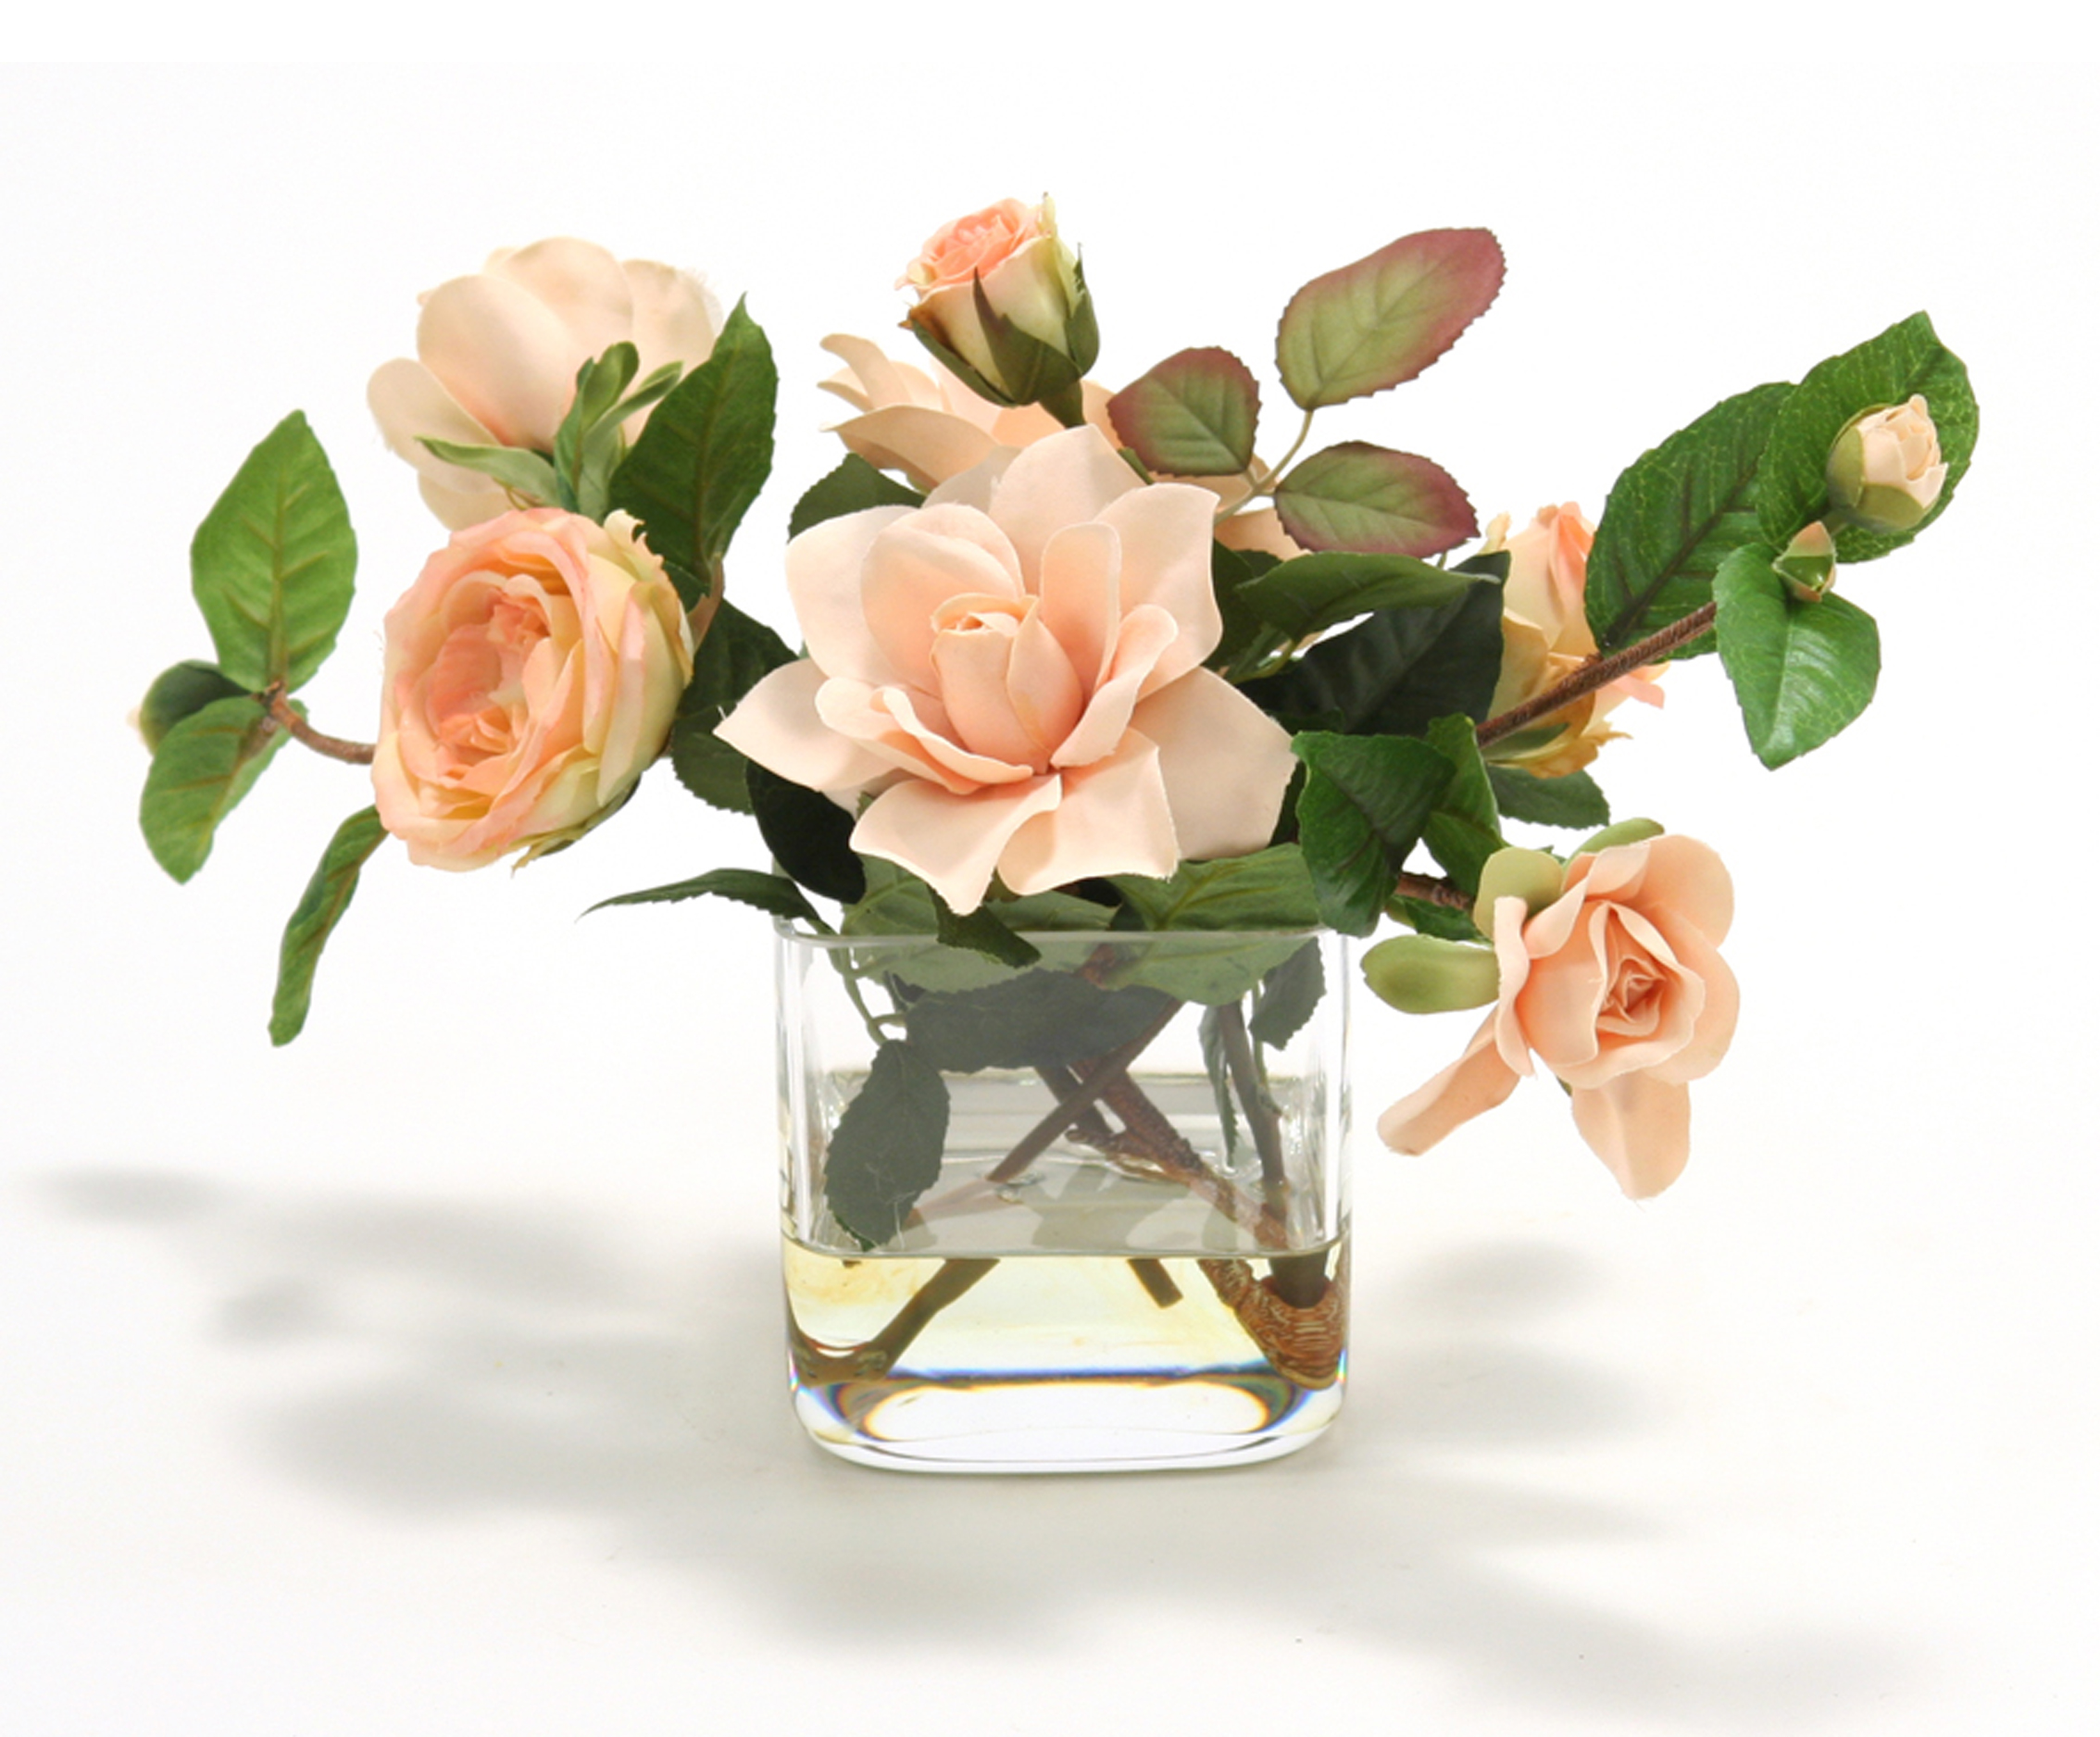 floor vase com with Waterlook Peach Roses And Peach Gardenias In 4 Square Glass Vase 2 on Glass Vases Many Ideas Shape as well Waterlook Peach Roses And Peach Gardenias In 4 Square Glass Vase 2 furthermore 267190190372209557 together with K To 12 Grade 3 Ikatlong Markahang Pagsusulit together with Cheap Bedroom Dressers Gallery.